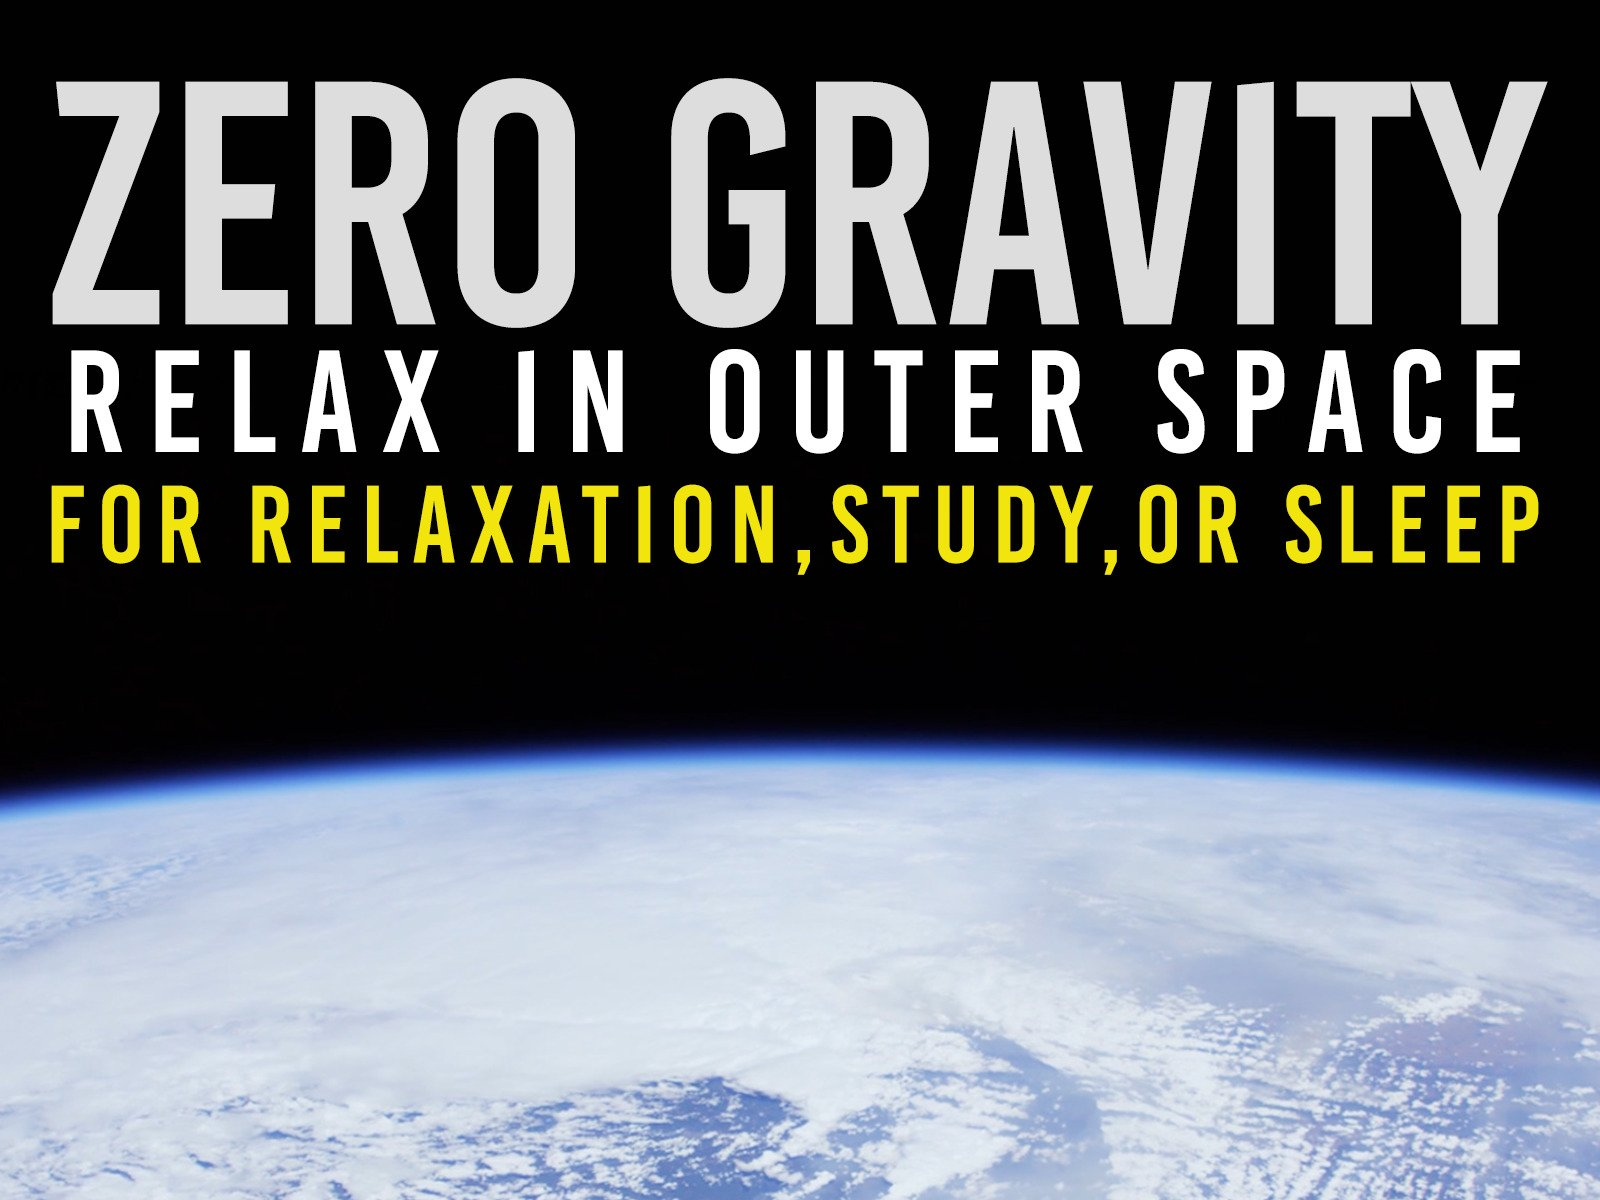 Zero Gravity: Relax In Outer Space: For Relaxation, Study, or Sleep - Season 1